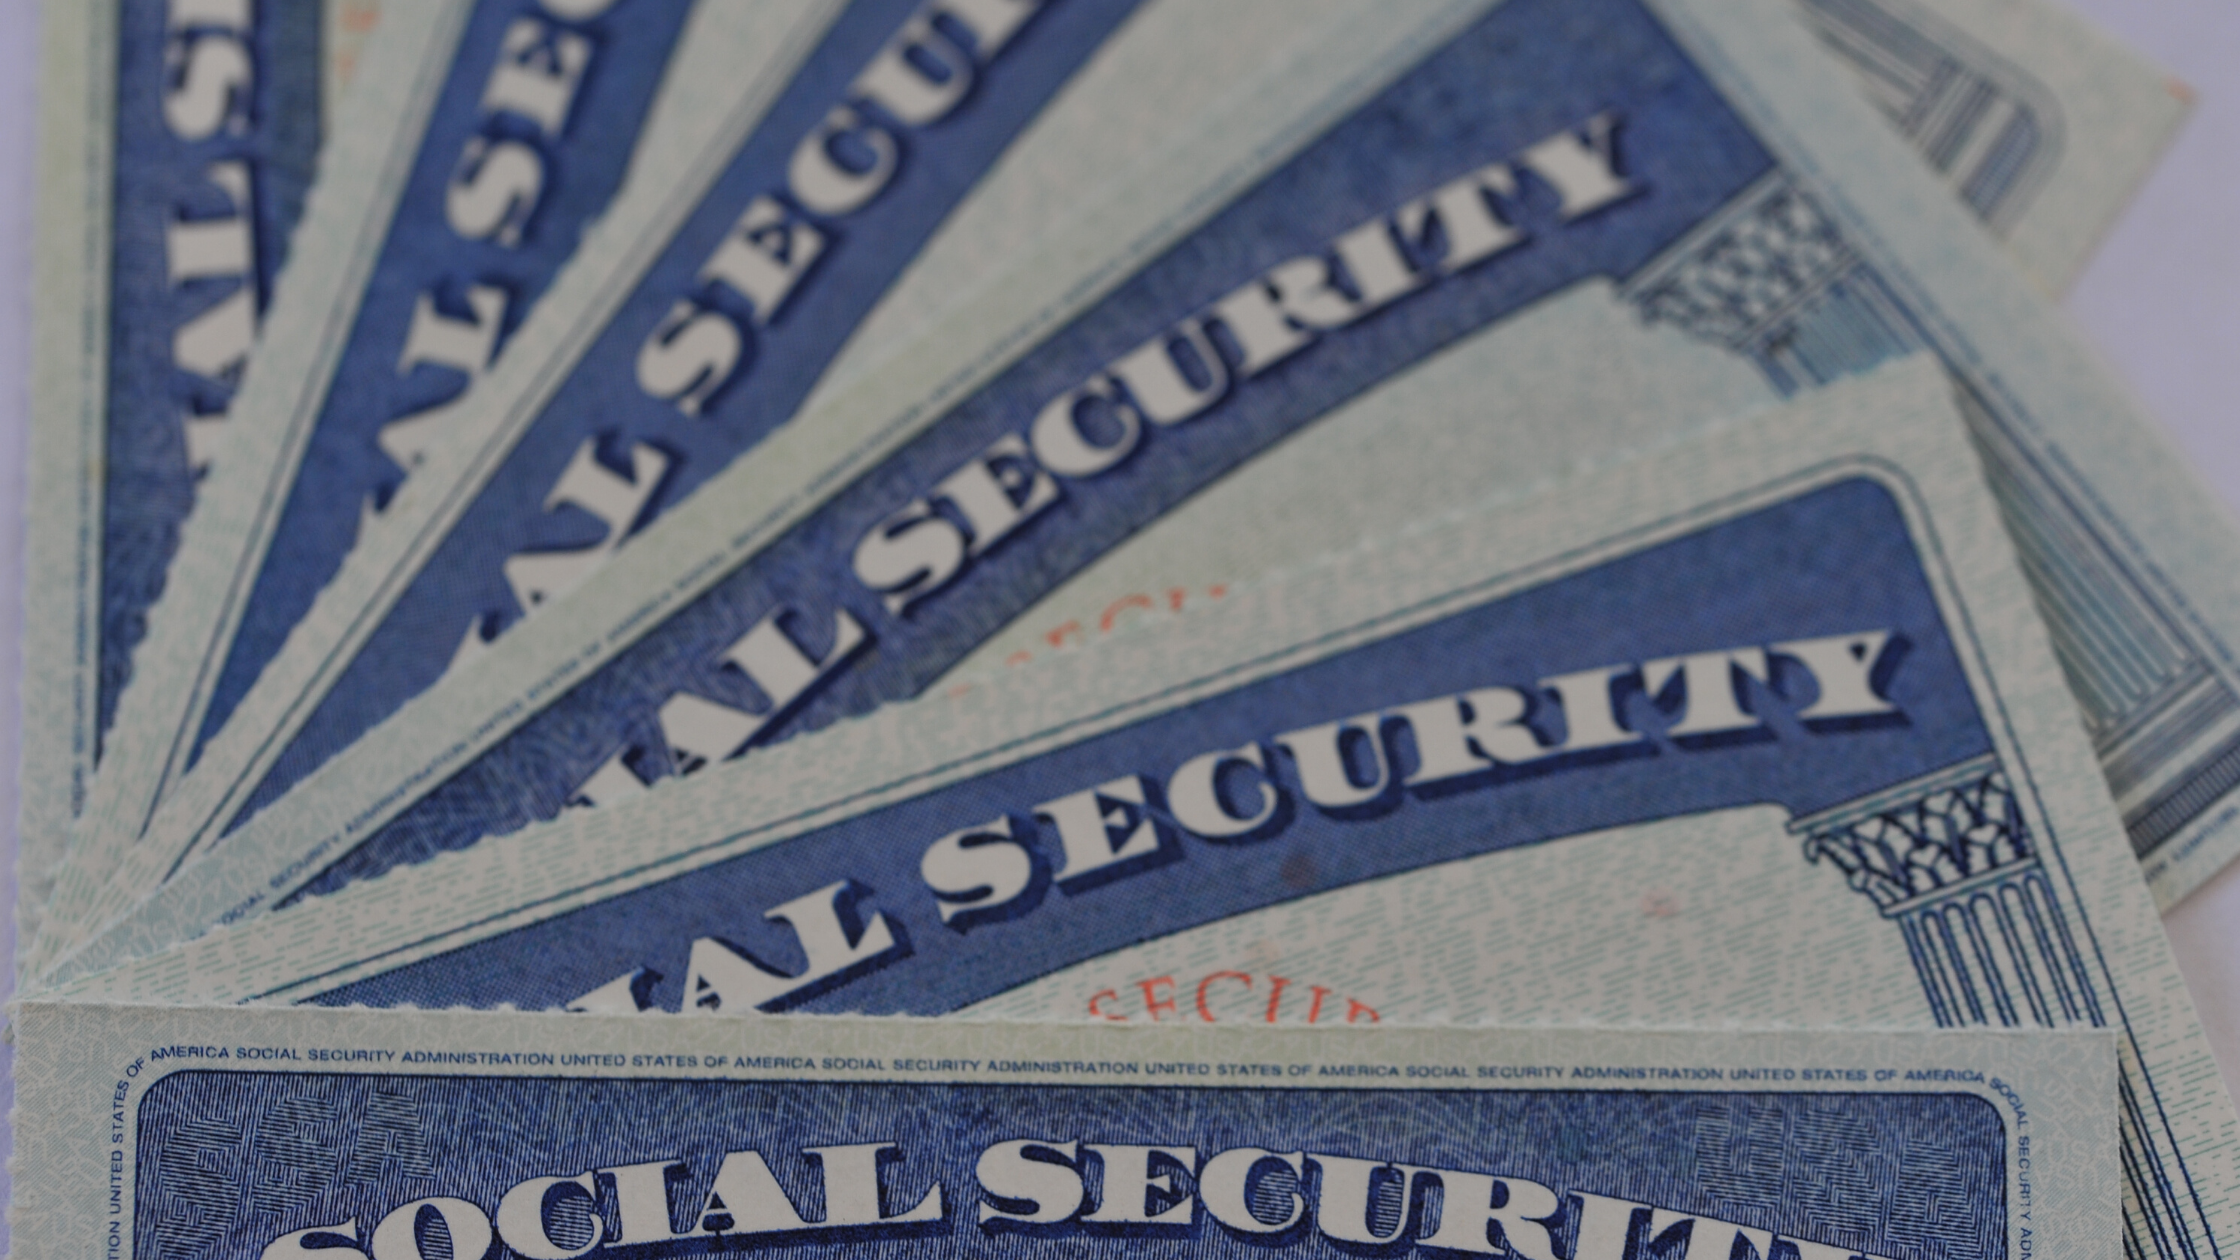 9 FACTS ABOUT SOCIAL SECURITY Thumbnail